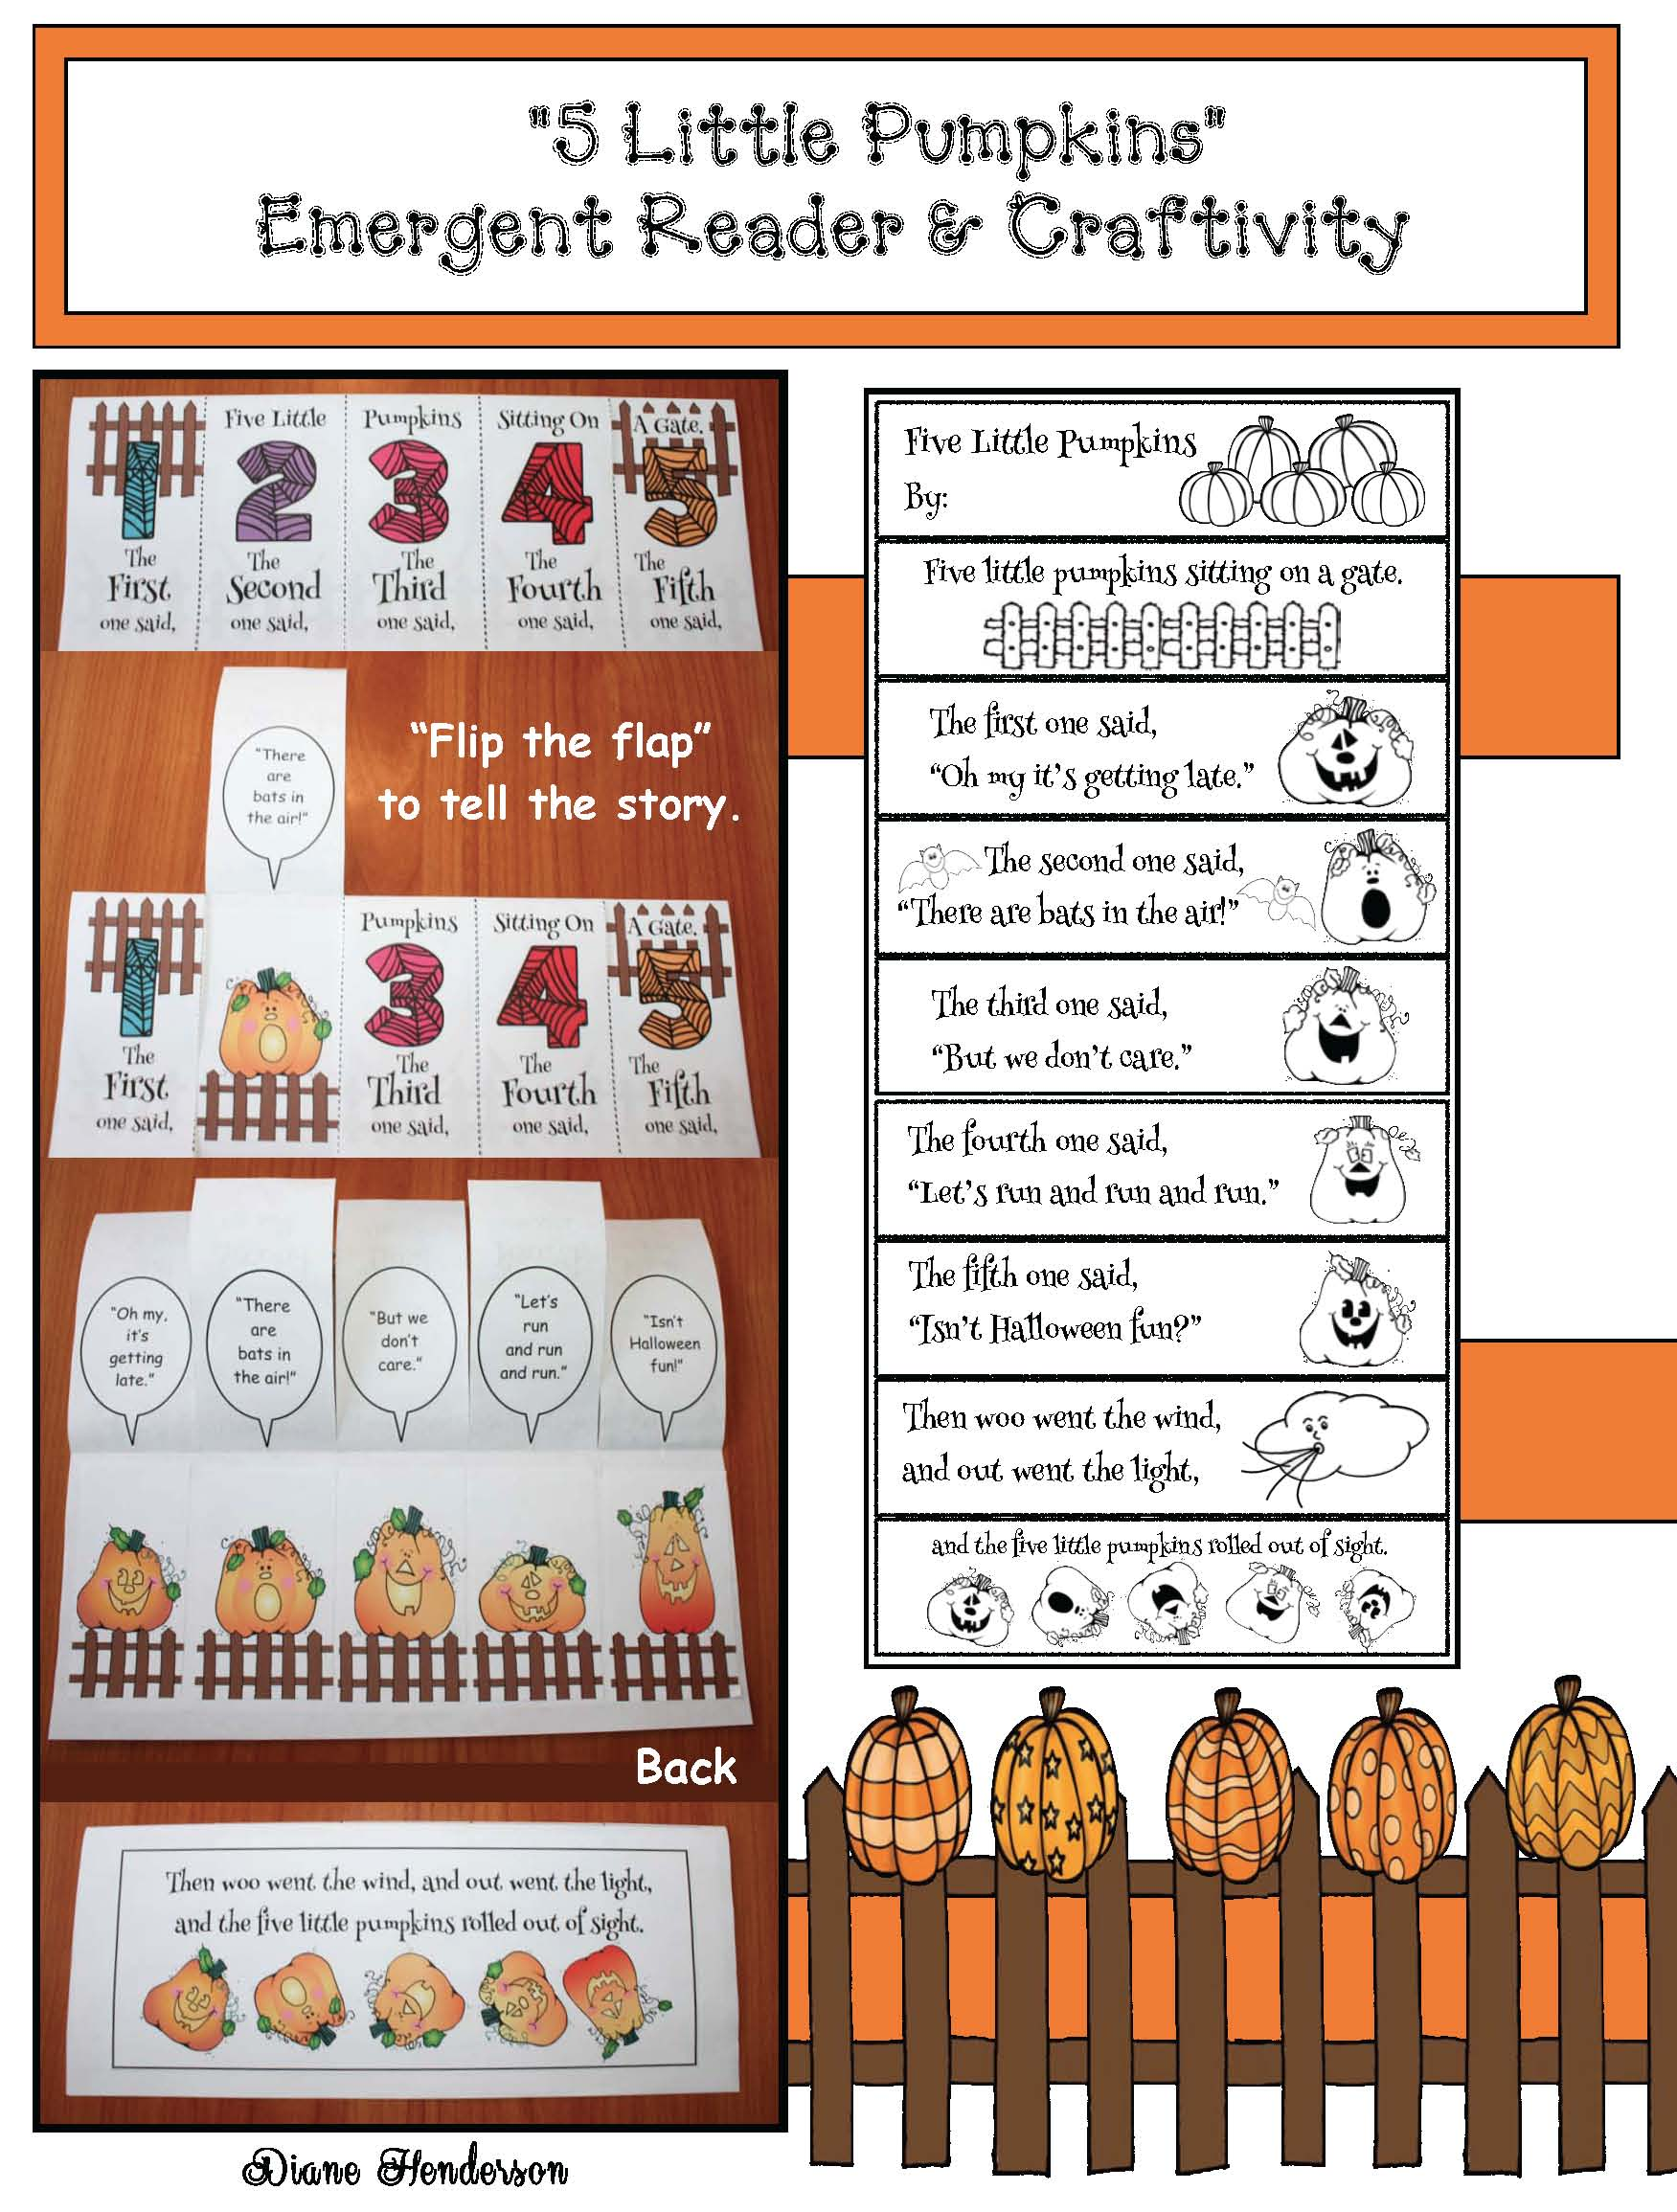 pumpkin activities, pumpkin crafts, math centers, activities for 5 little pumpkins poem, 5 little pumpkins poem, 5 little pumpkins crafts, 5 little pumpkins activities, common core pumpkins, ordinal numbers, october poems, october poetry